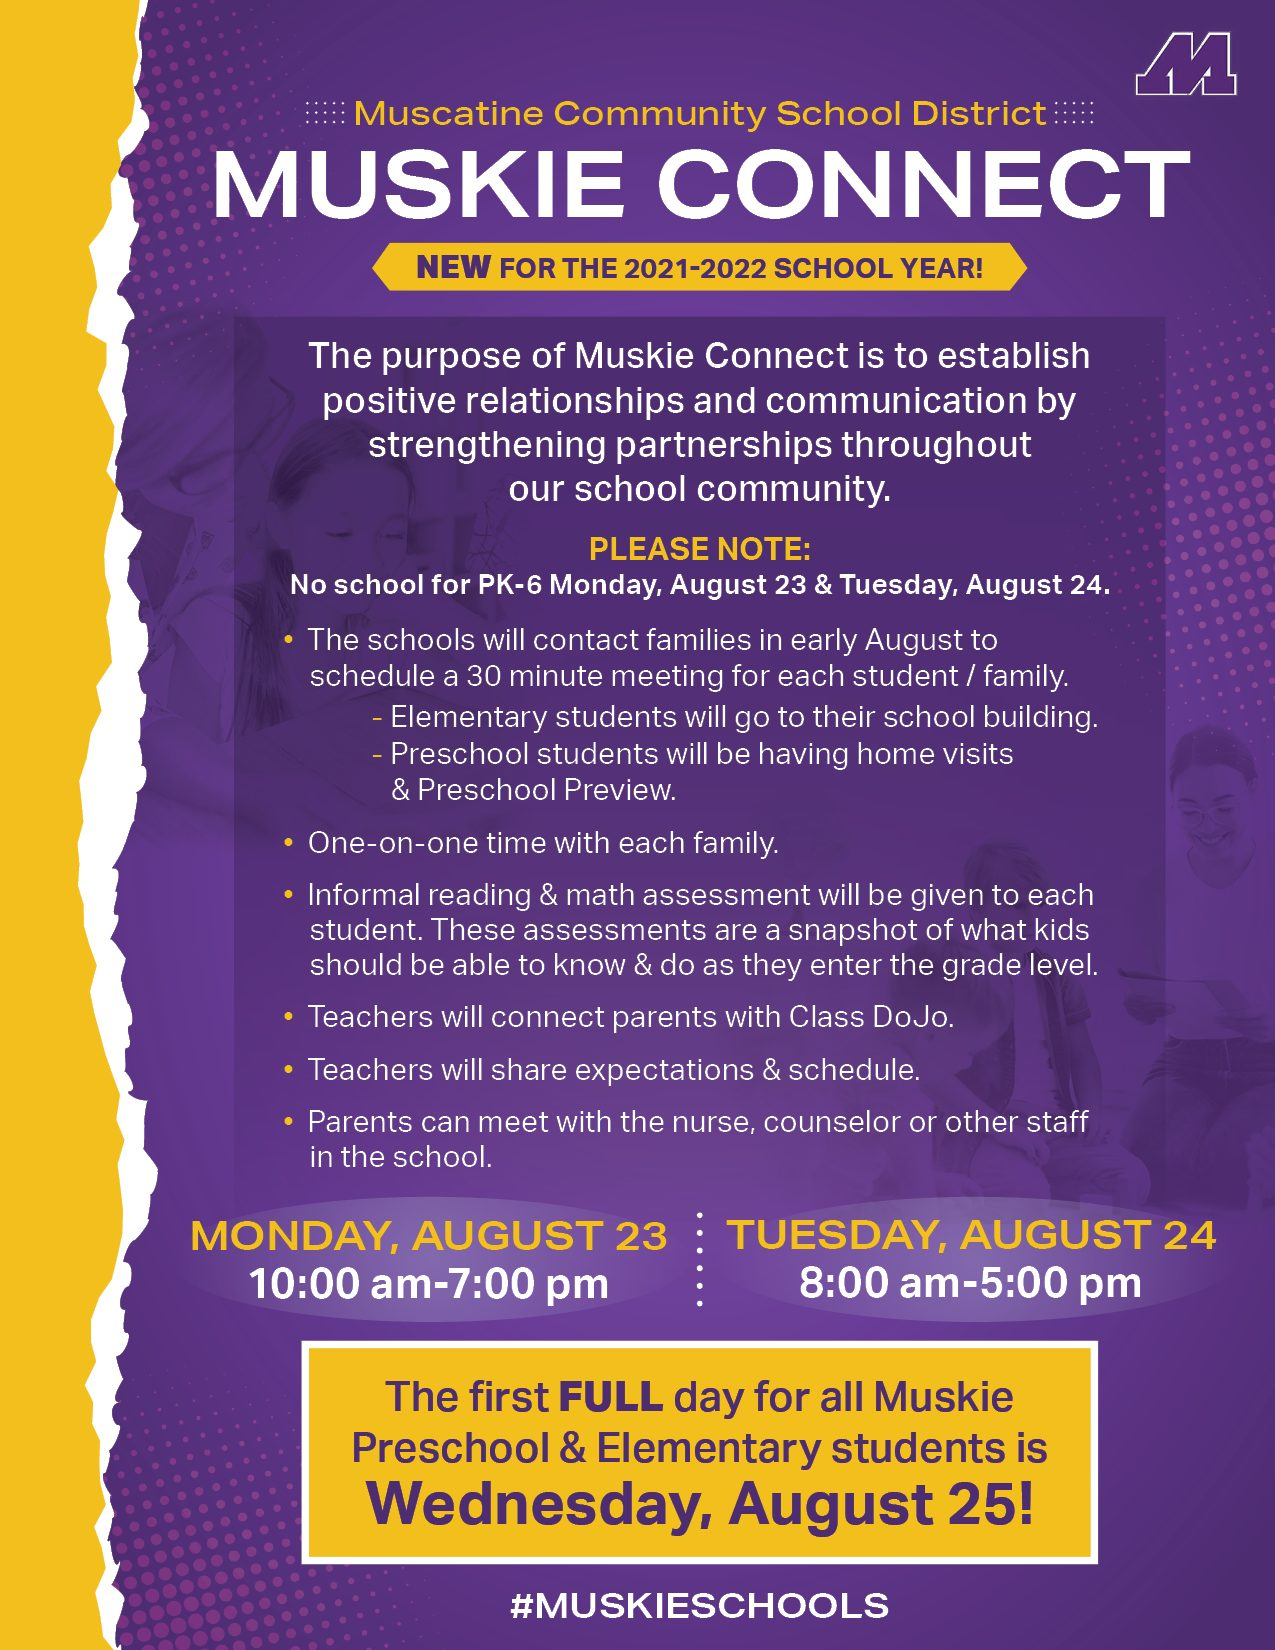 Muskie Connect new back to school plan for preschool to 6th grade students. This is the flyer that outlines that in English.